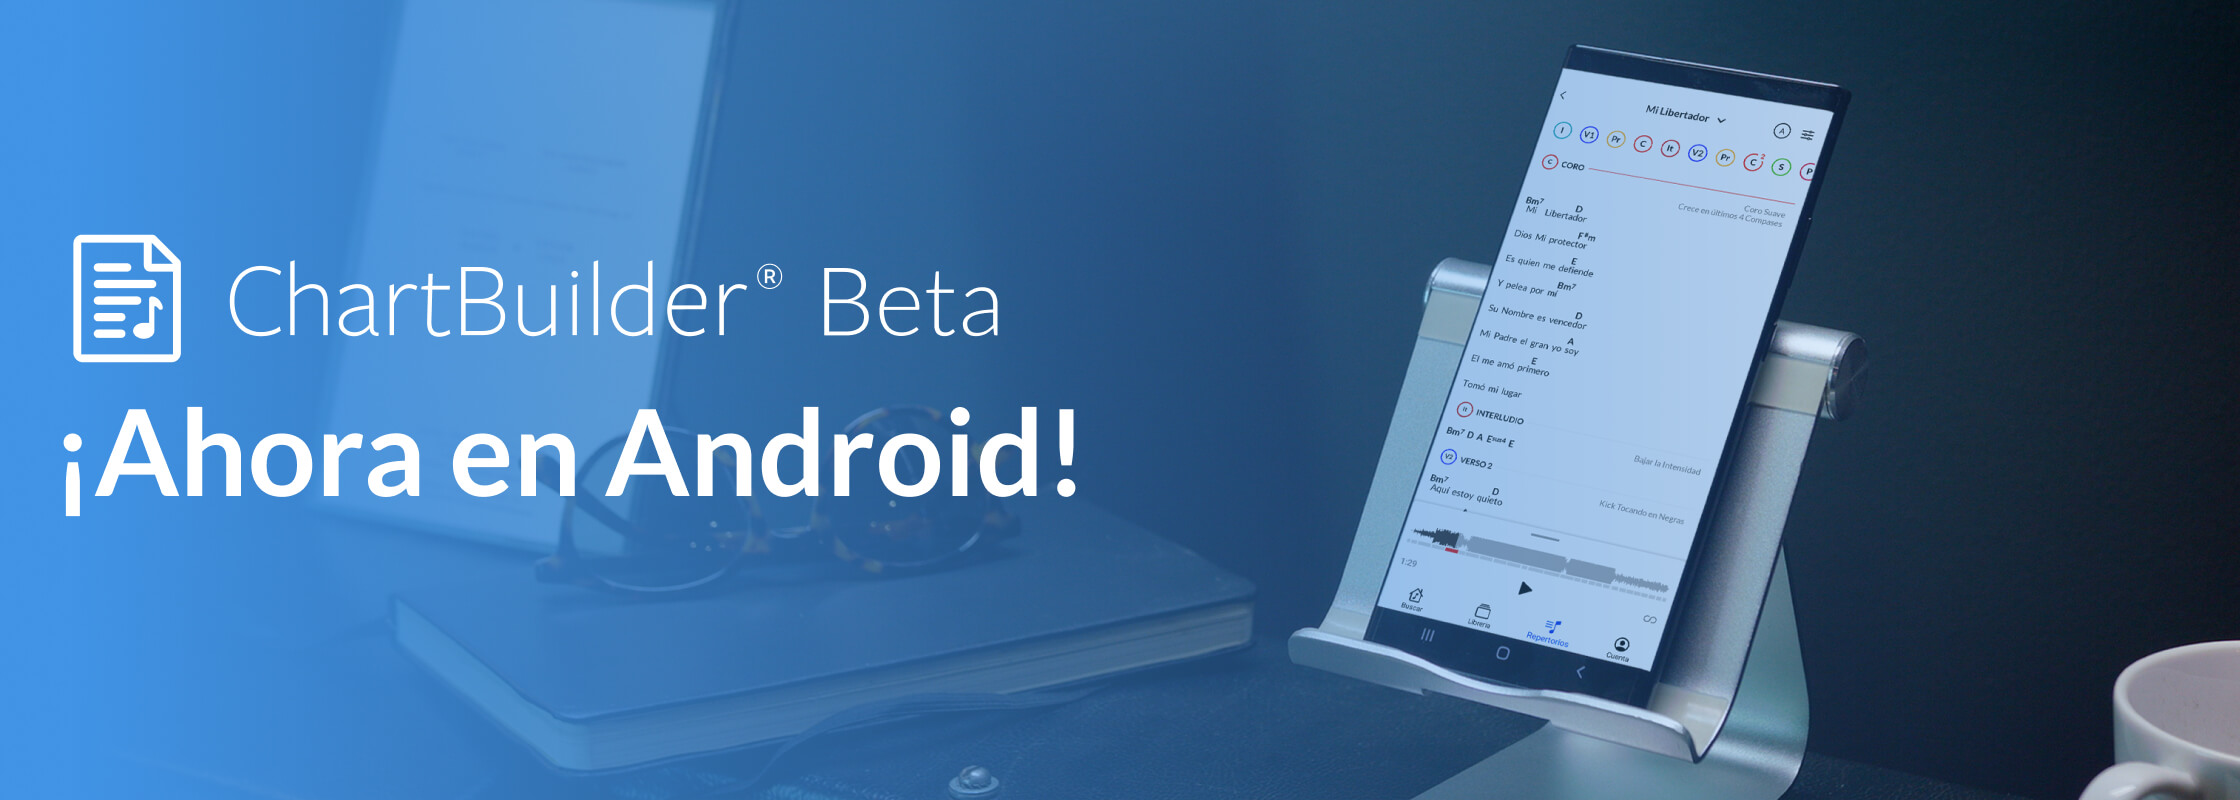 CB in Android